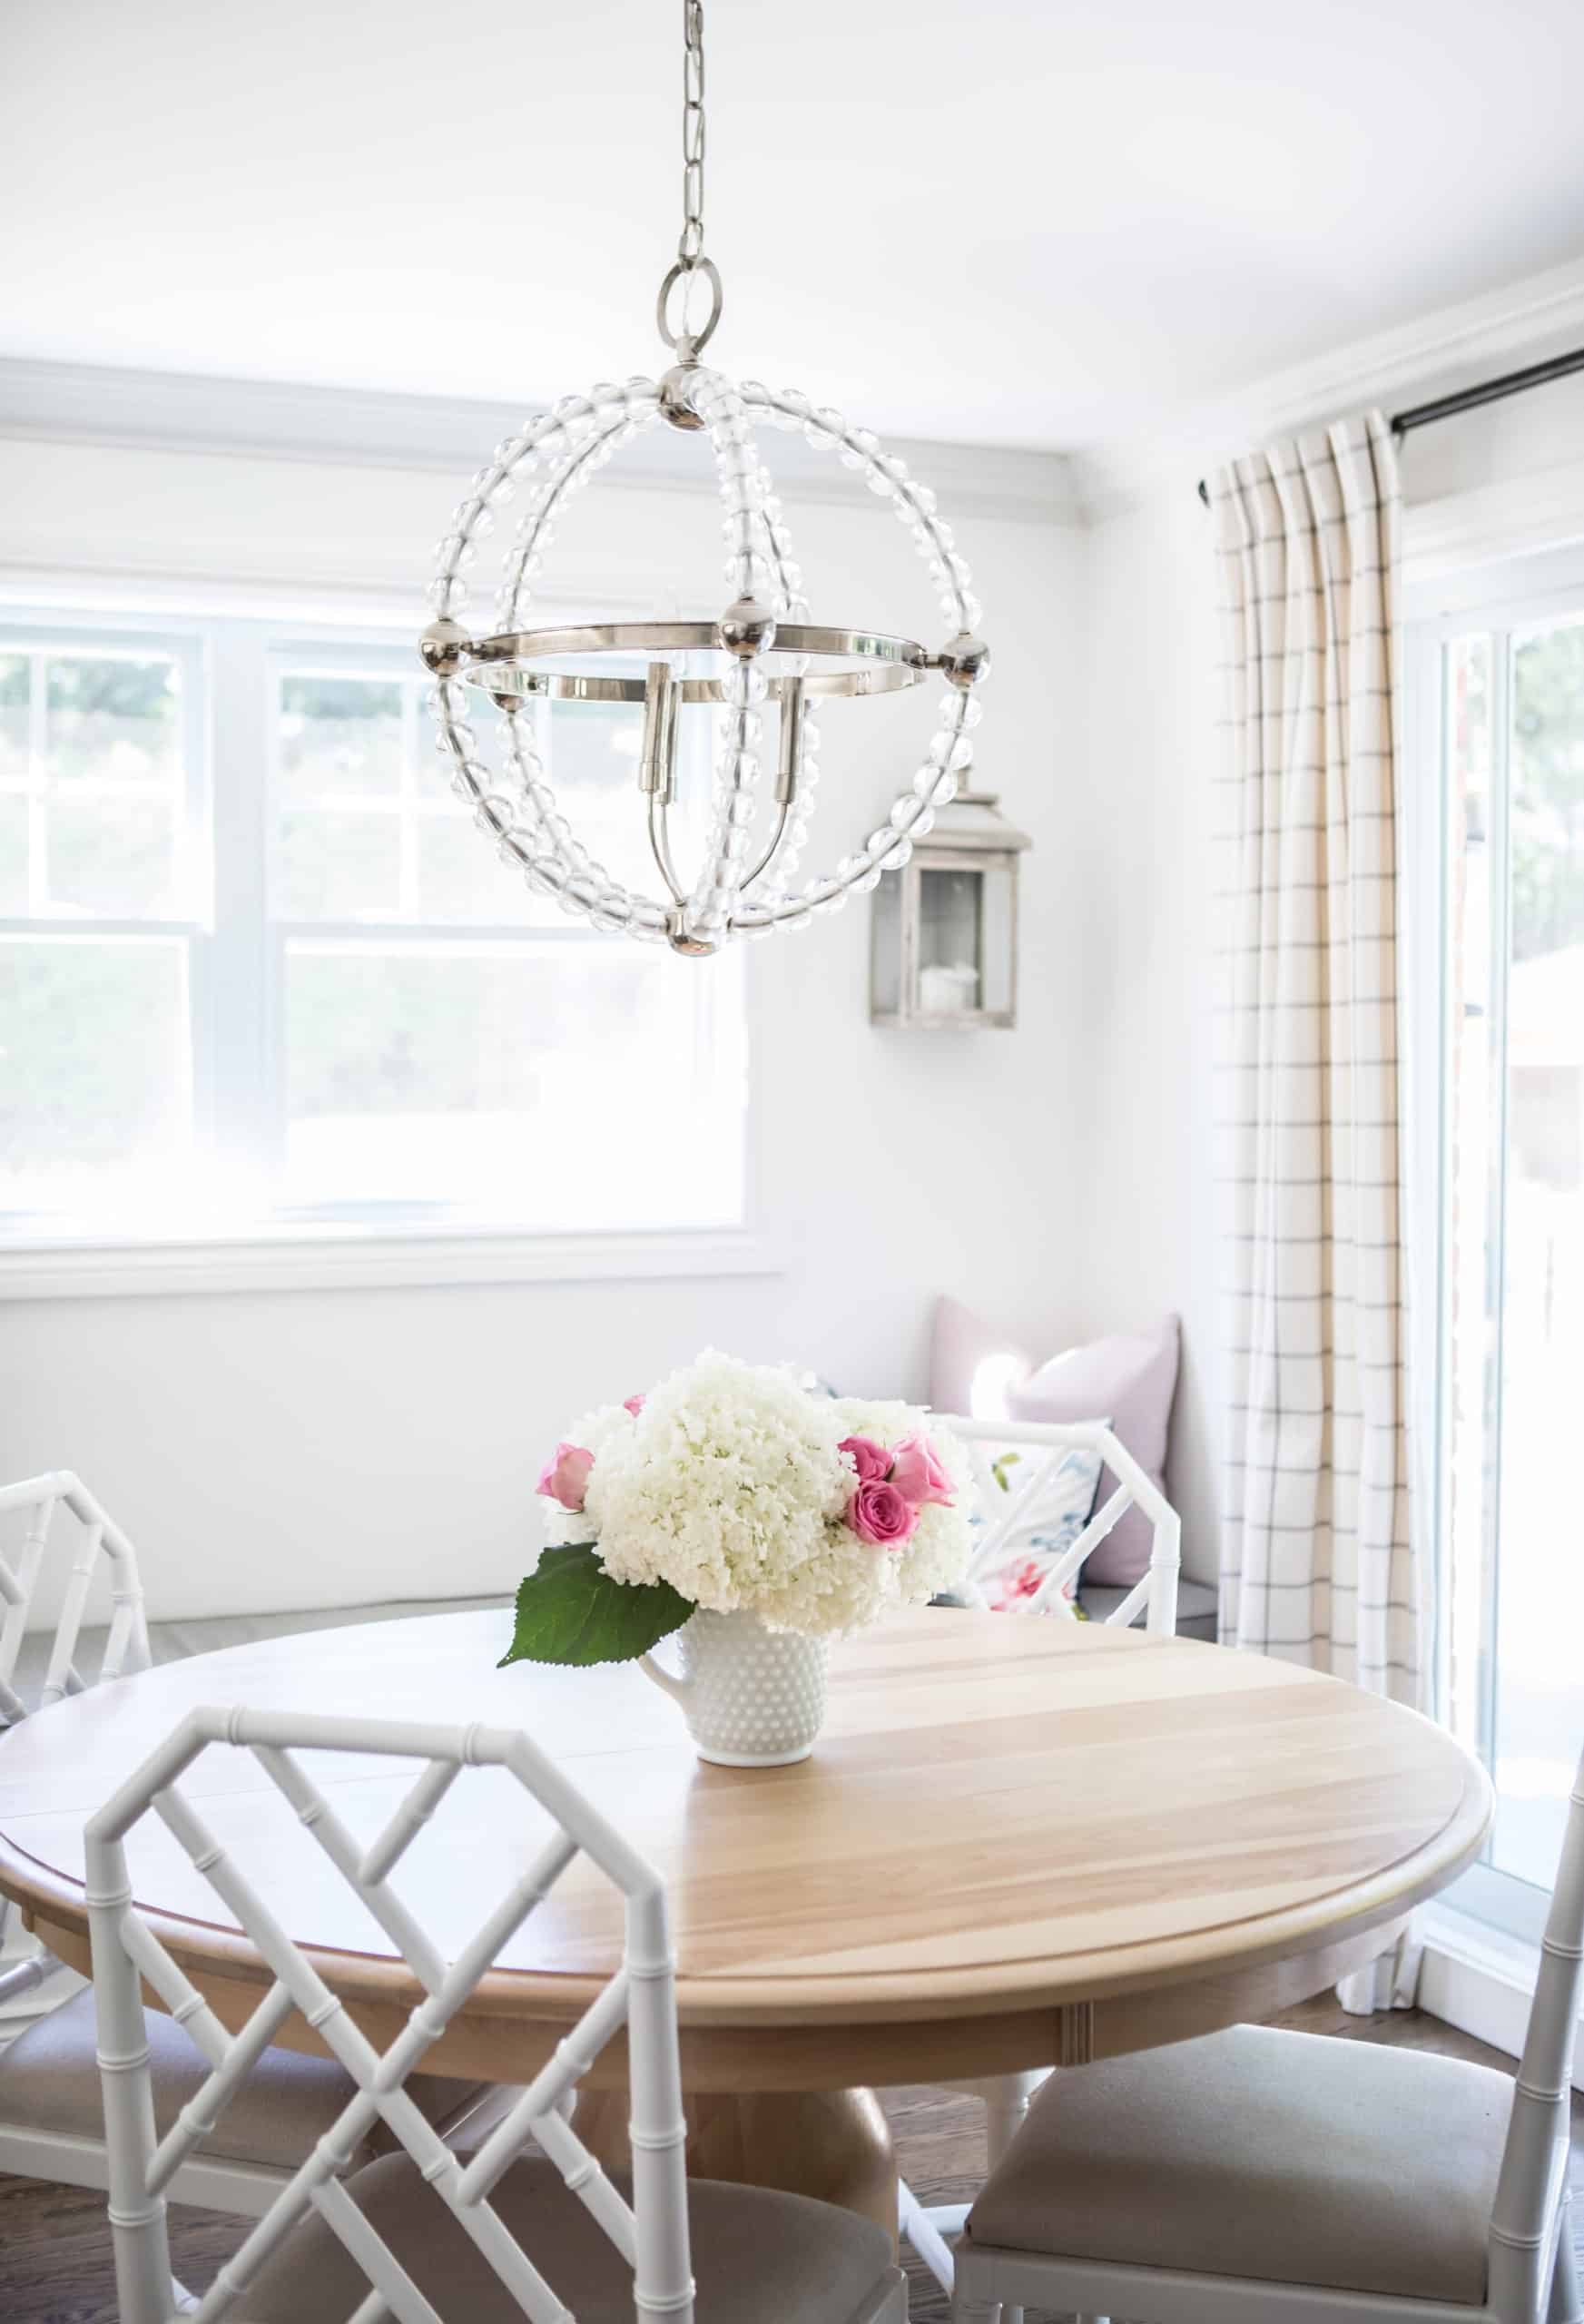 Dining room with a white spherical chandelier